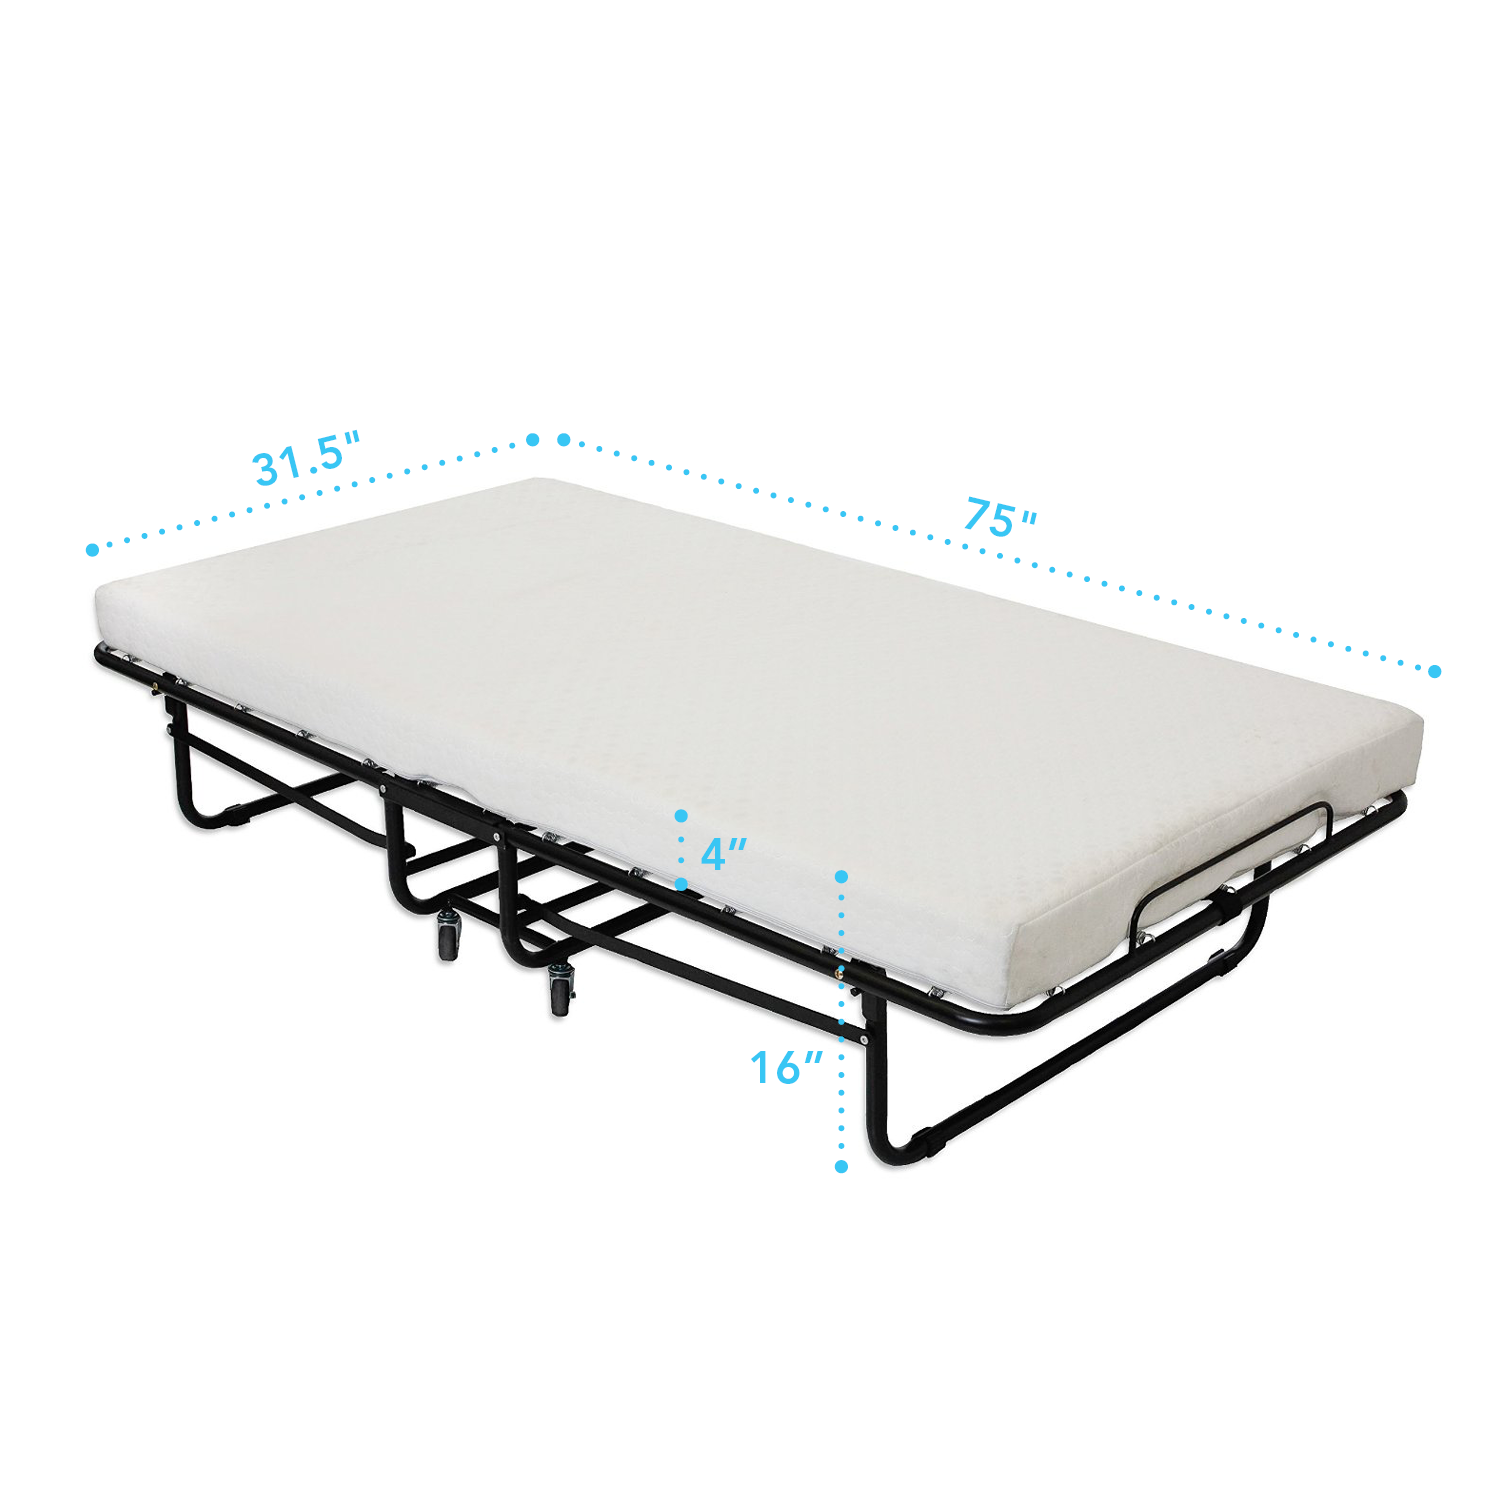 Premium Folding Bed With Luxurious Memory Foam Mattress 75 X